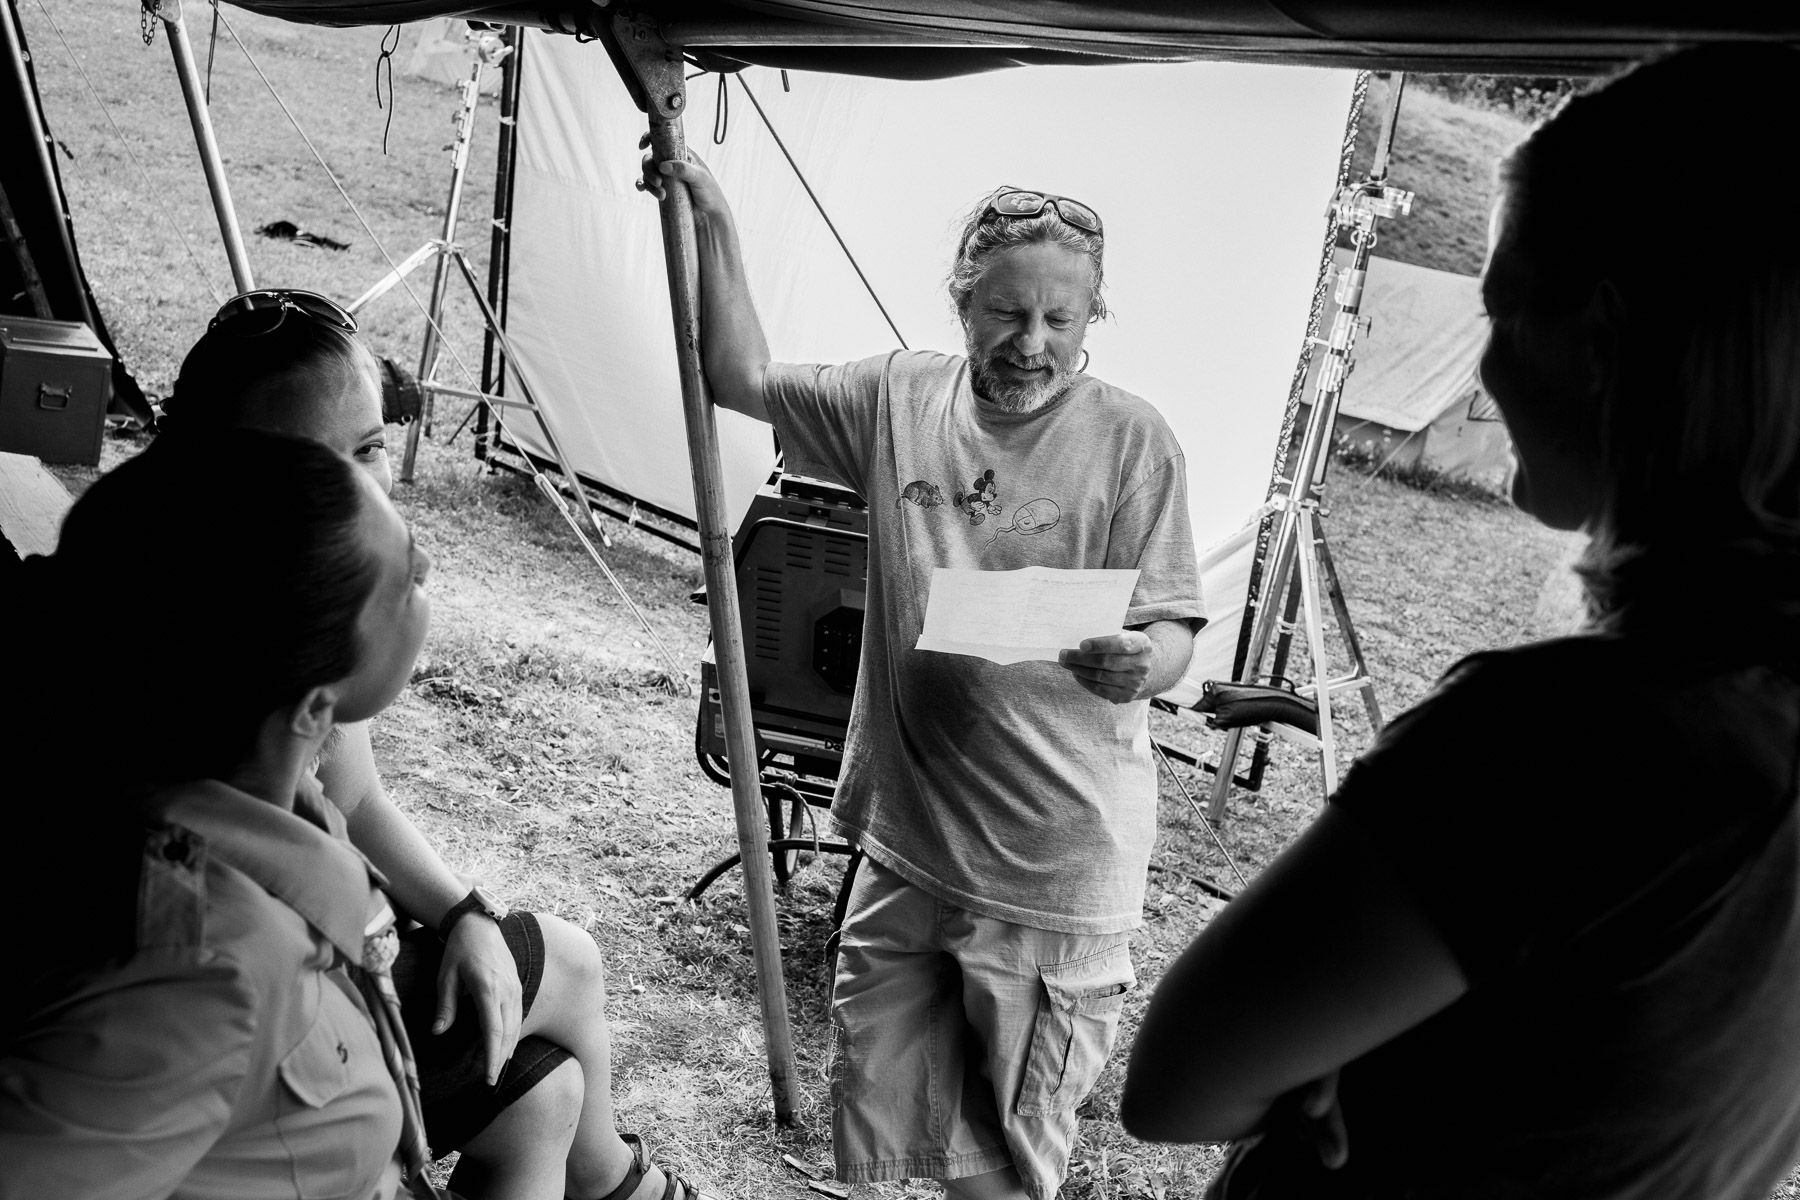 Director Miha Hočevar on the set of Going Our Way 2.